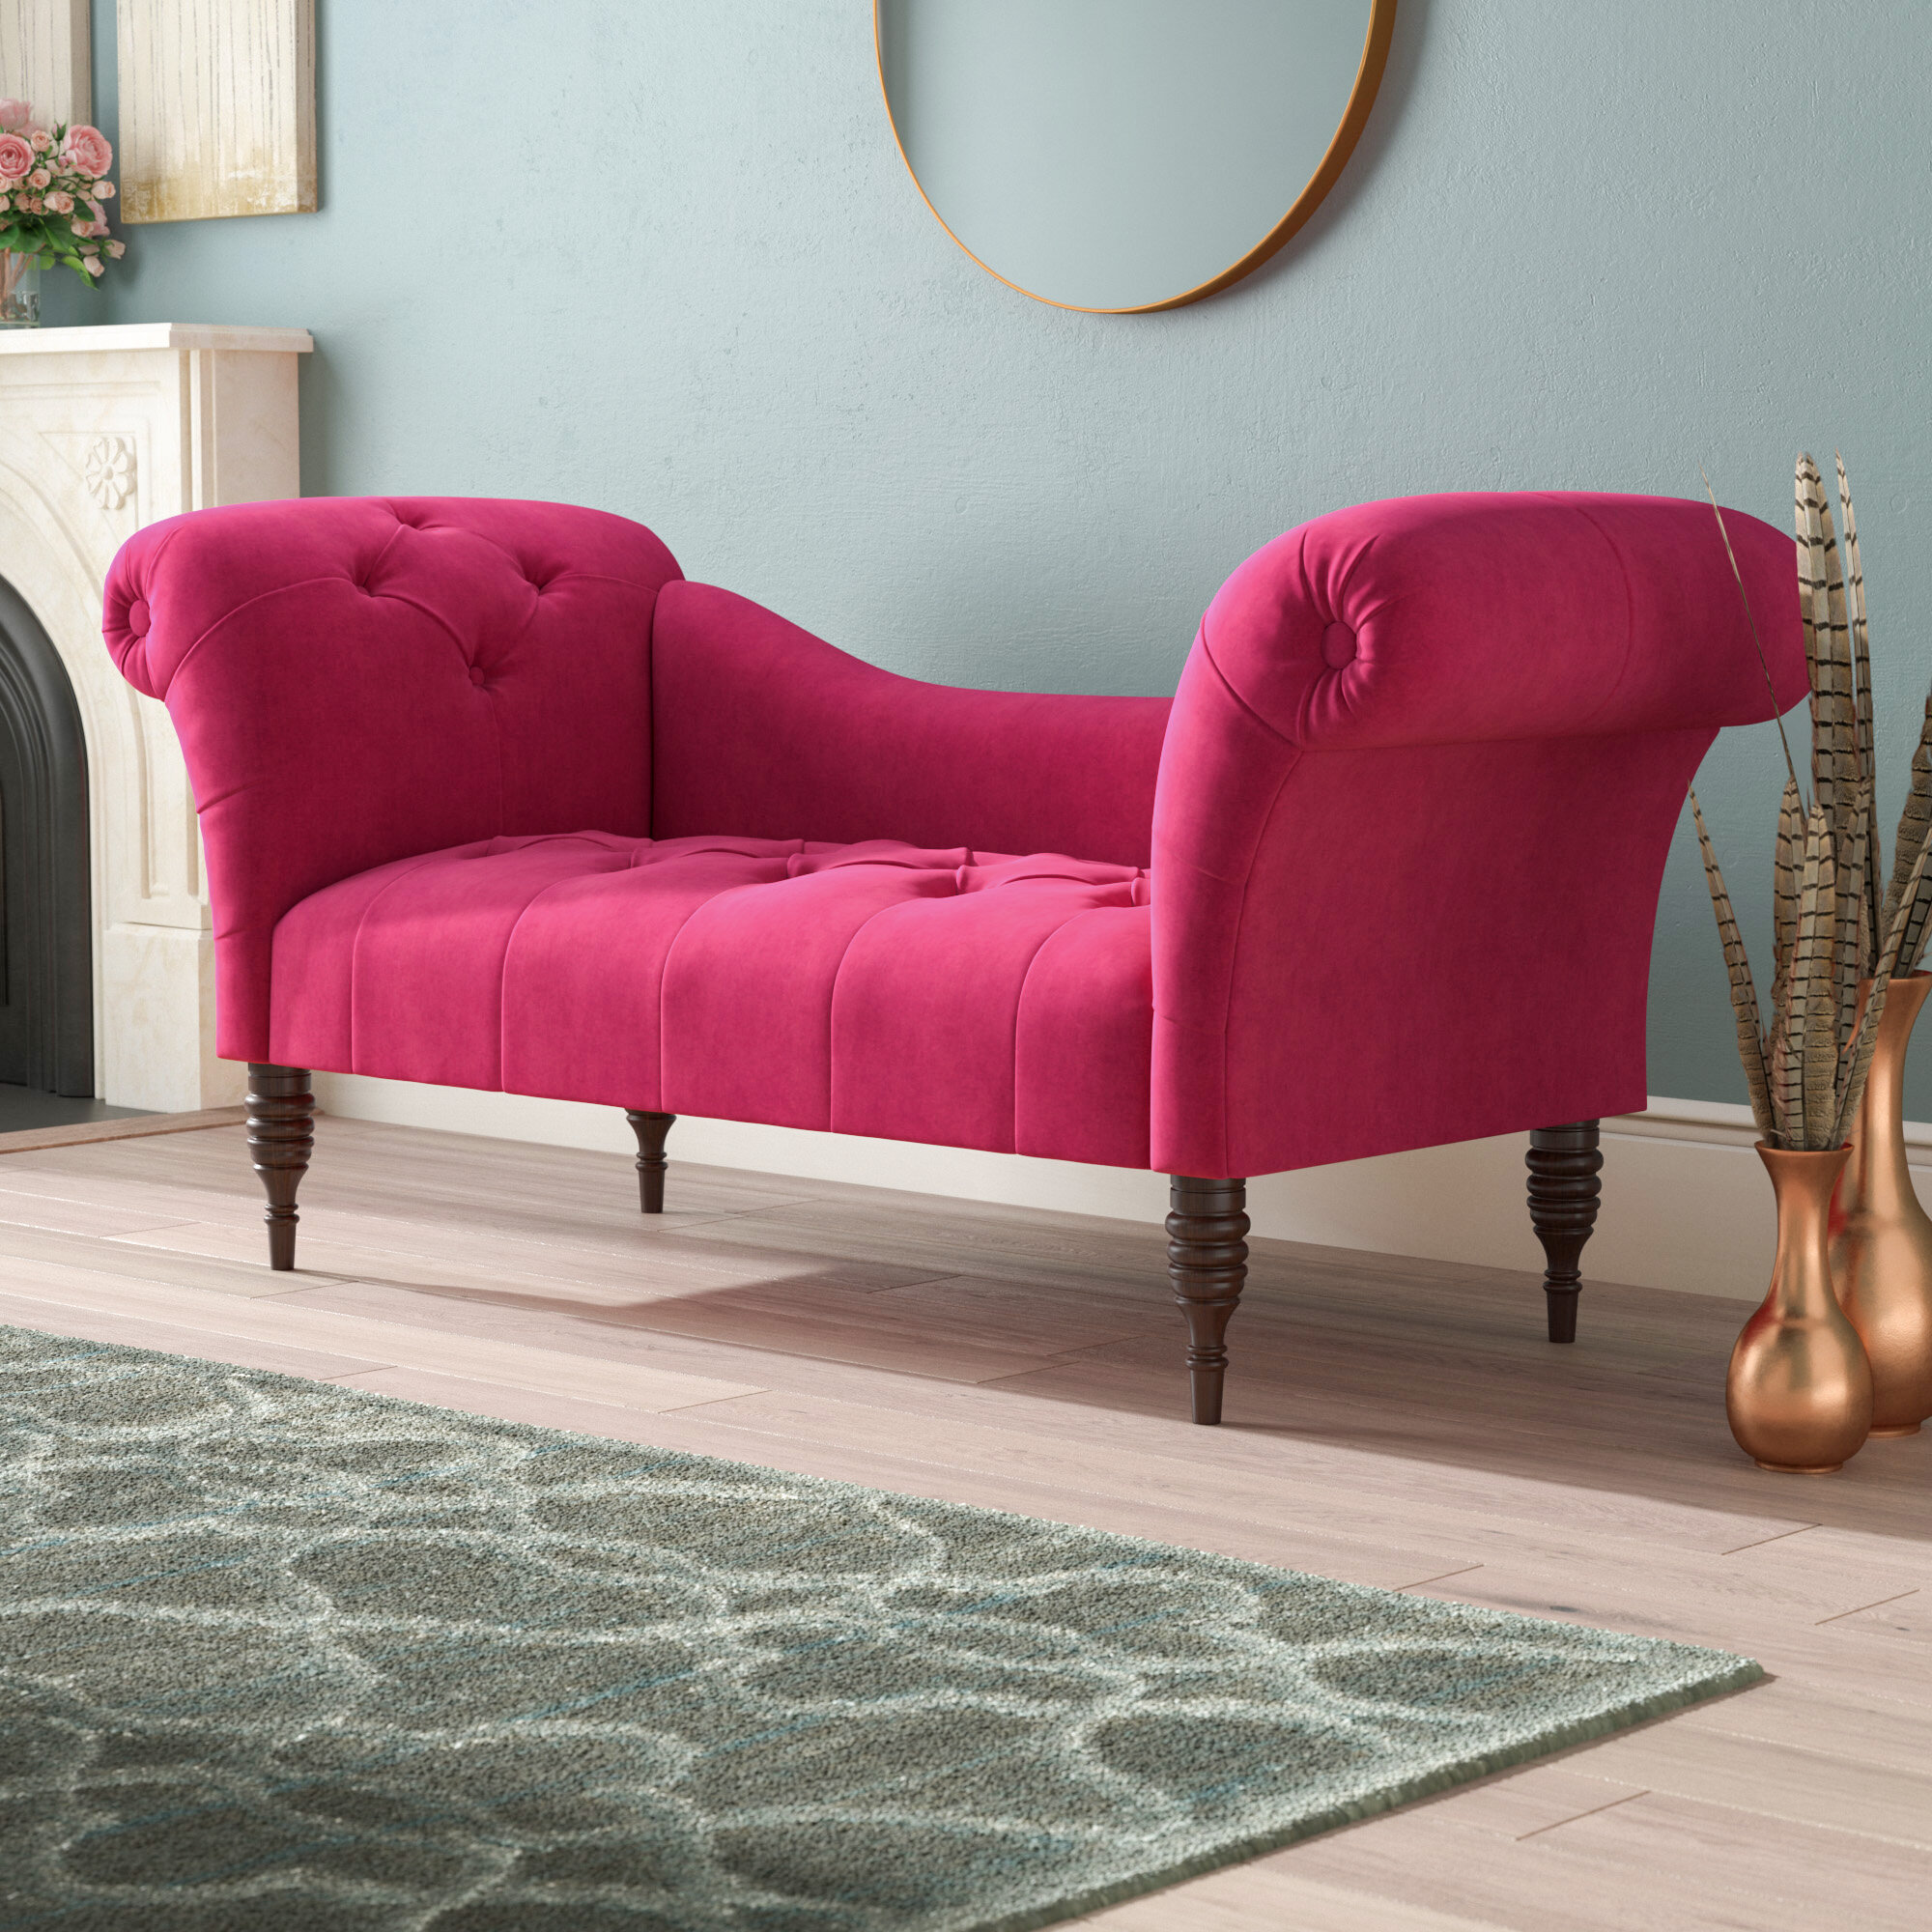 tufted lounge formidable red off chaise with sofas